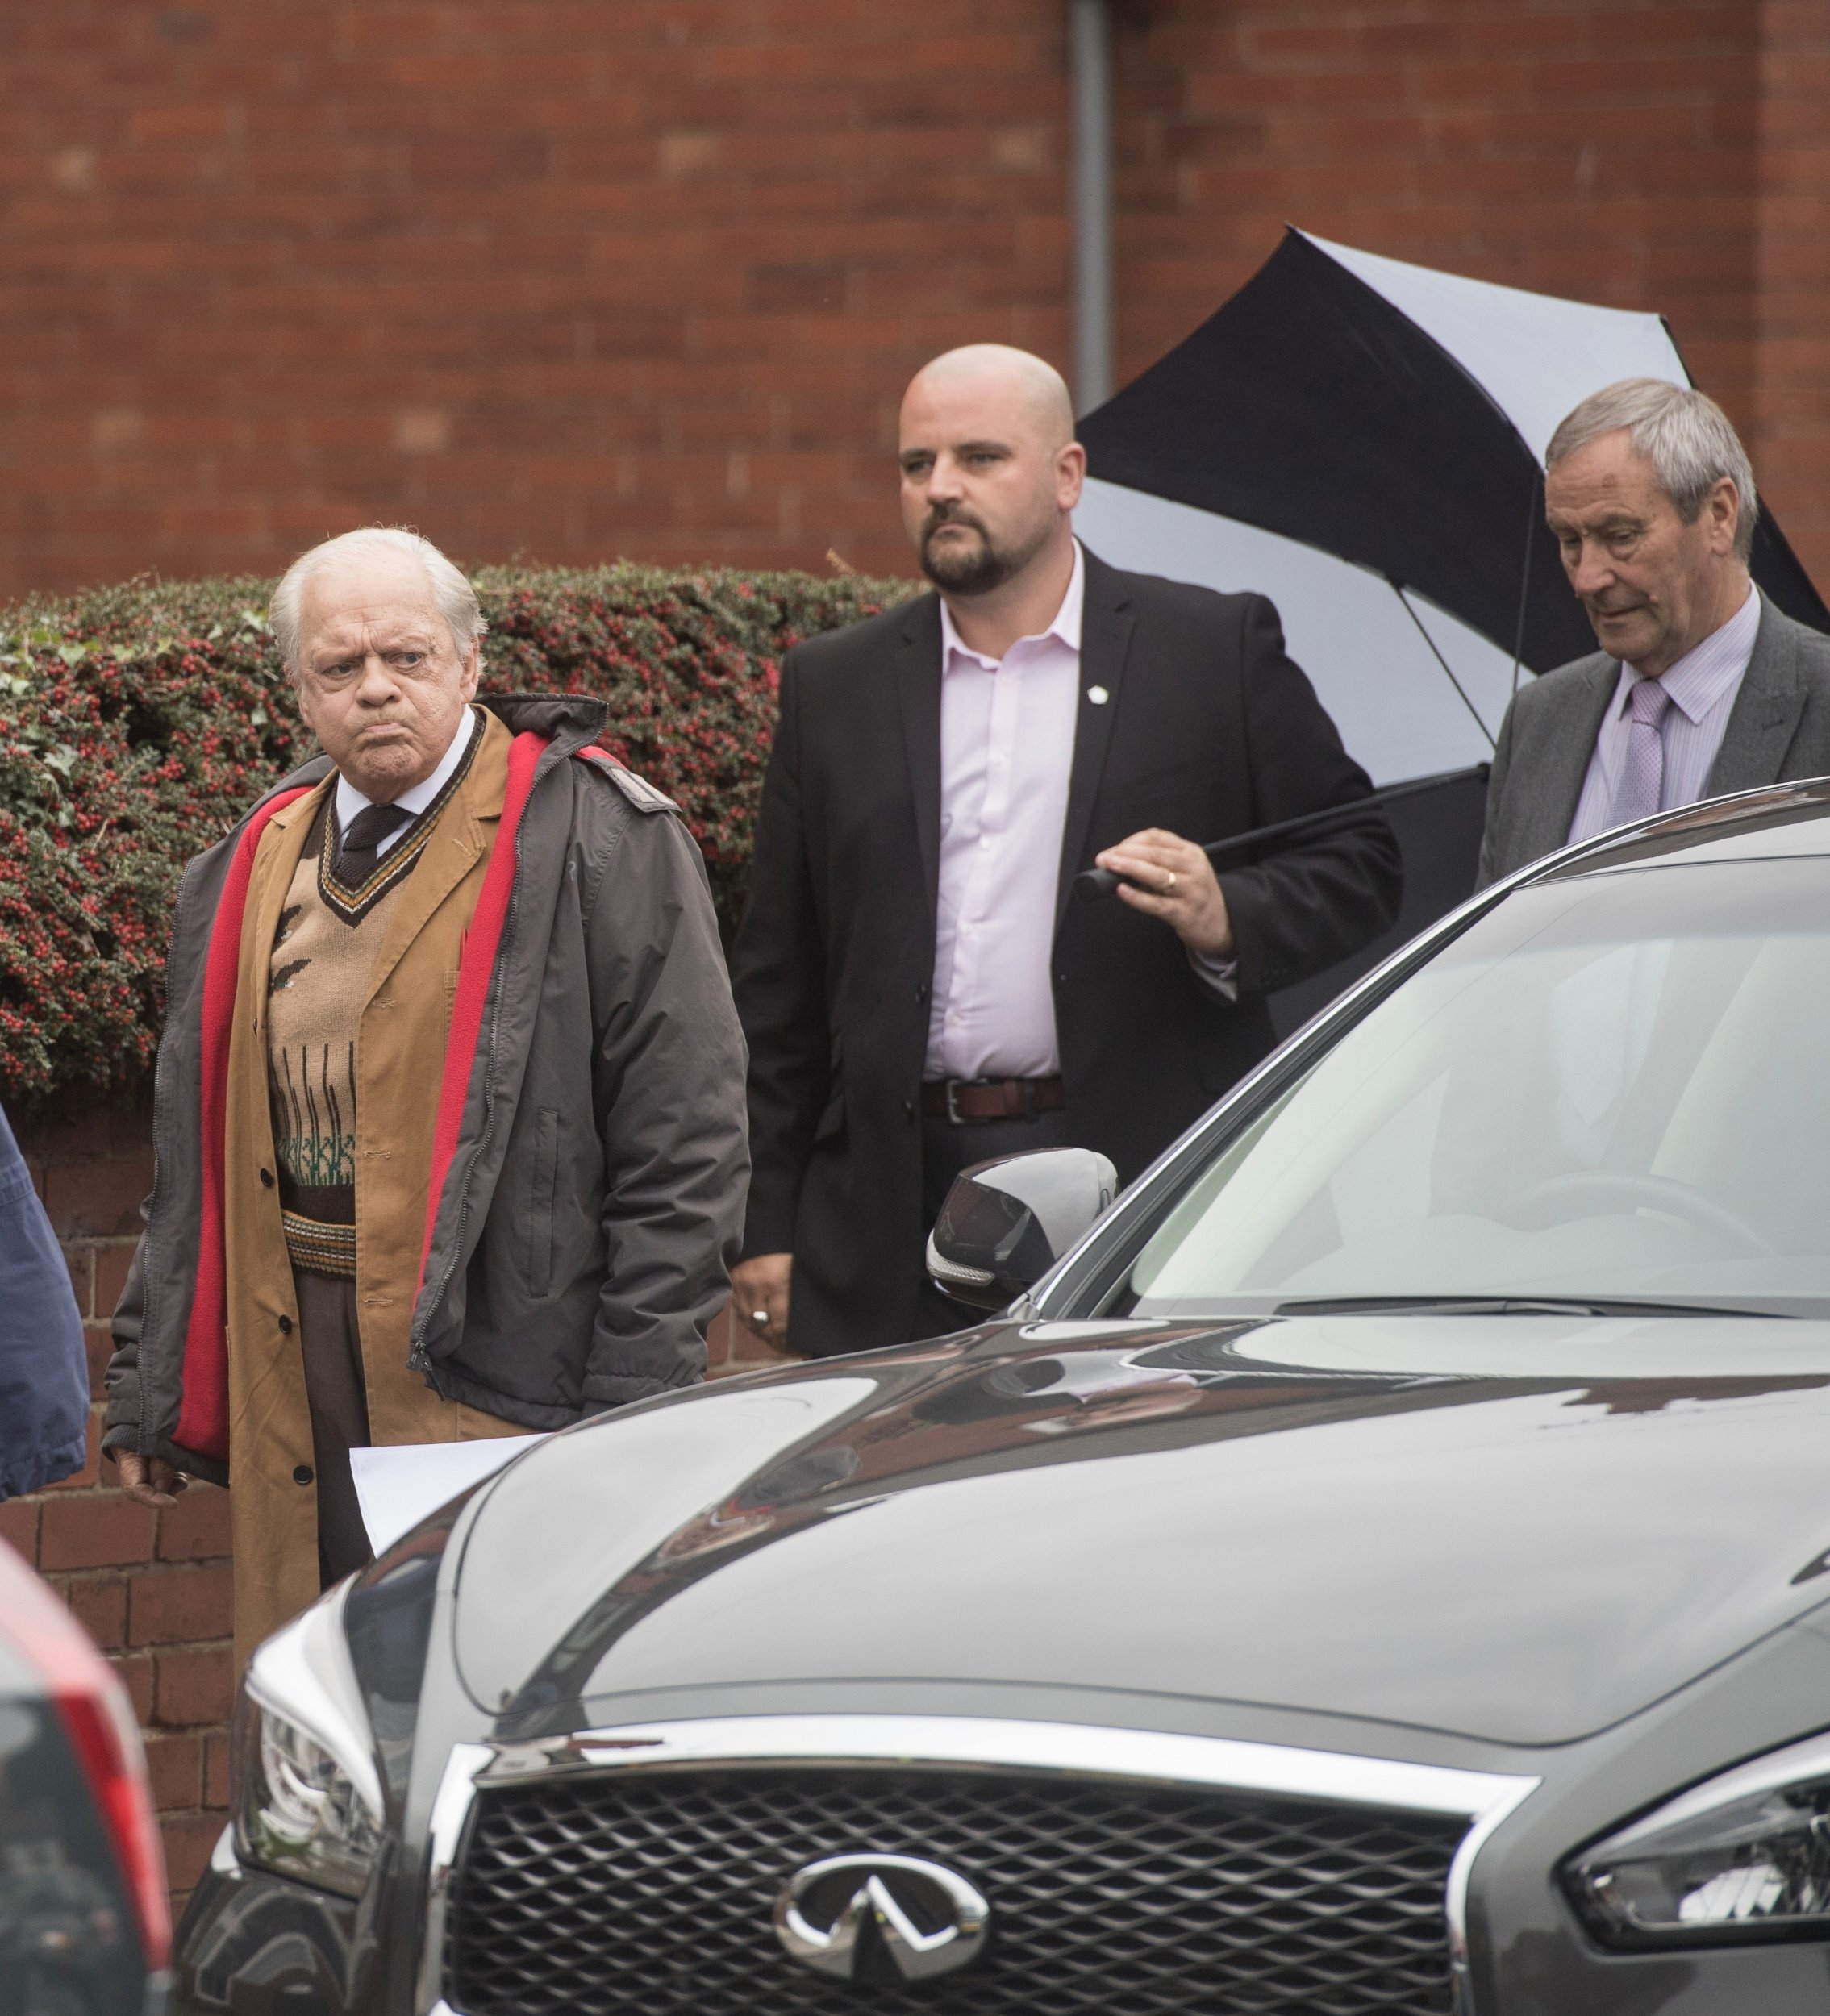 David Jason pictured arriving on set with two security guards after 'credible threat' on his life